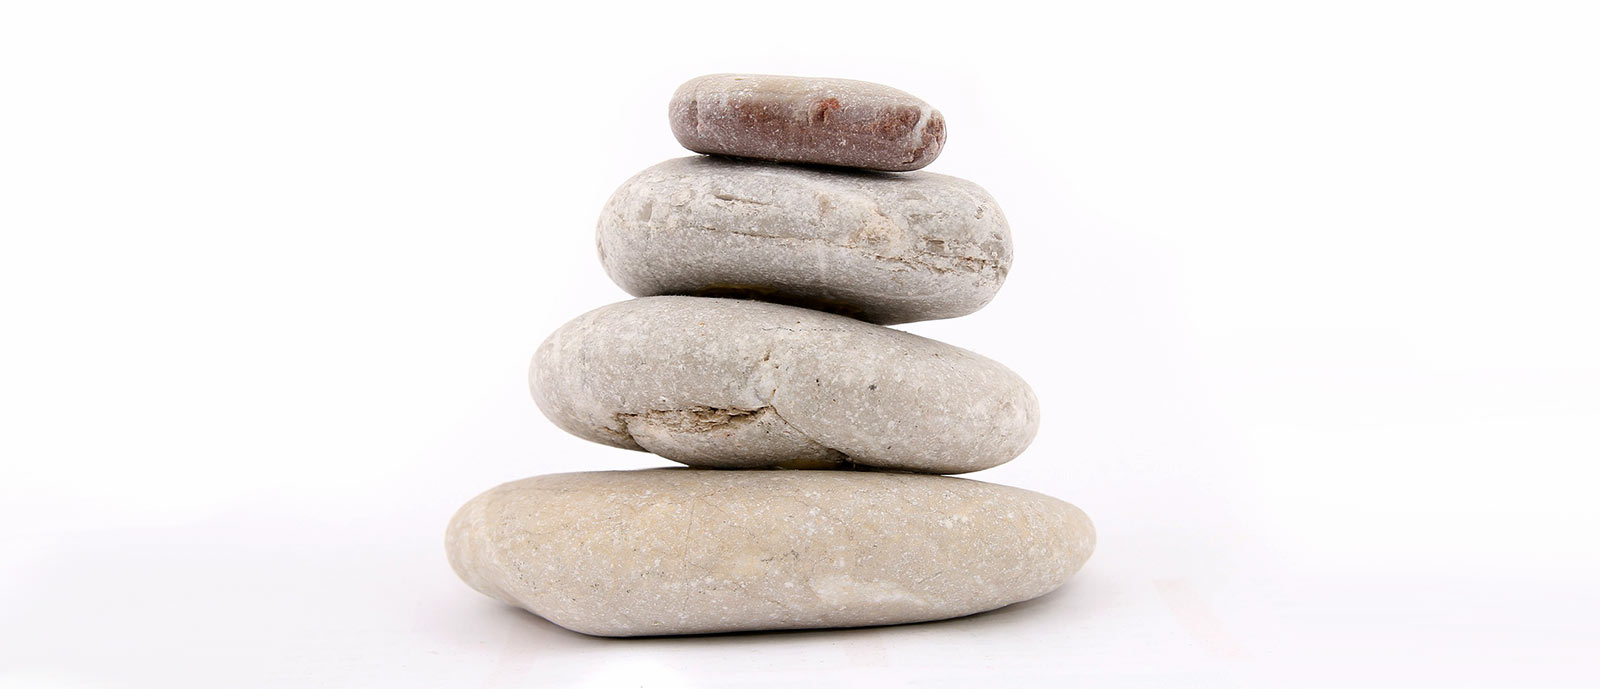 Meditation Manchester for mindfulness stones